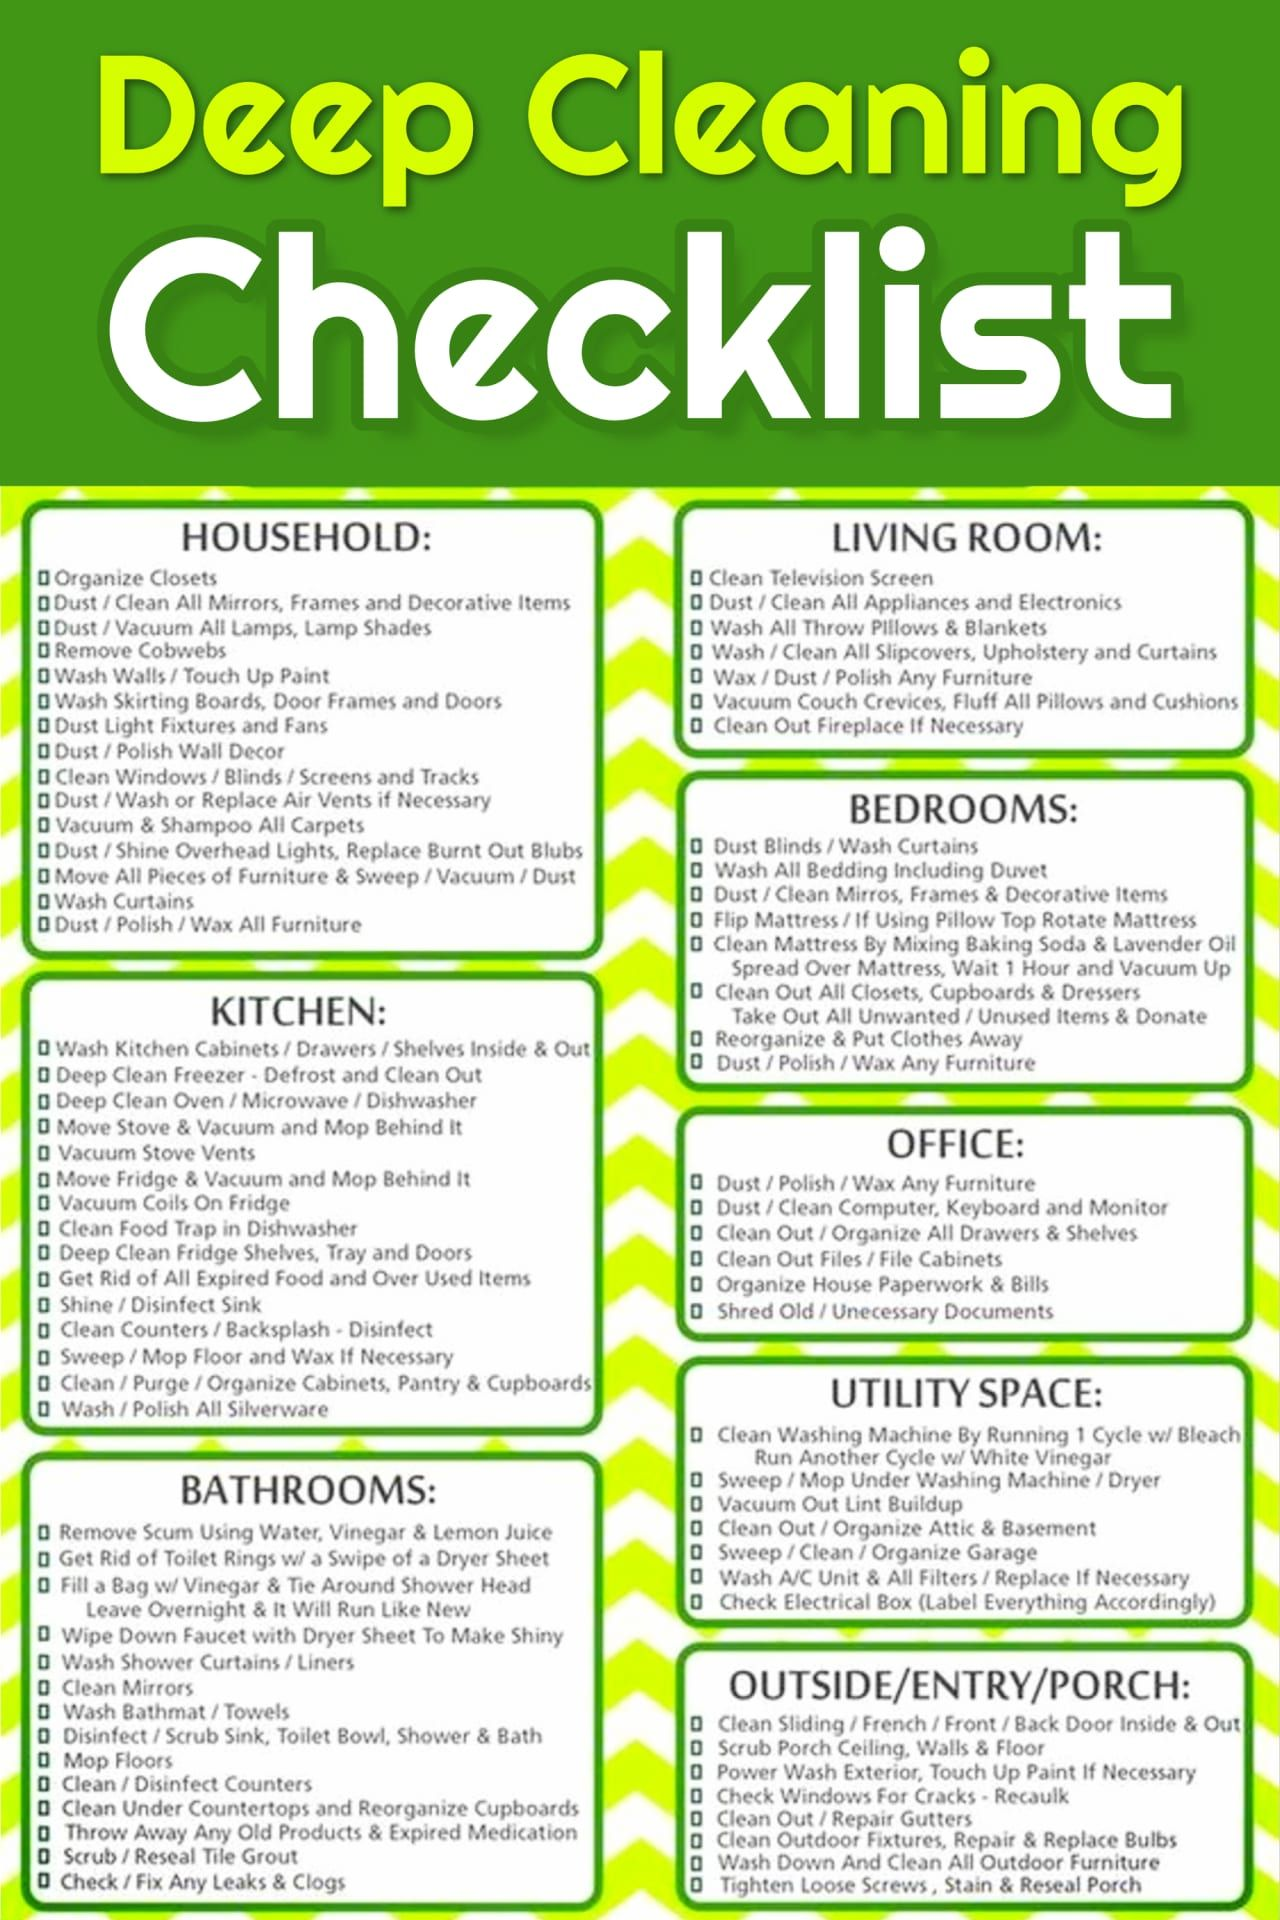 Deep Cleaning Checklist Free Printable Room By Room Deep Cleaning Checklist Cleaning Hacks House Cleaning Checklist Cleaning Business